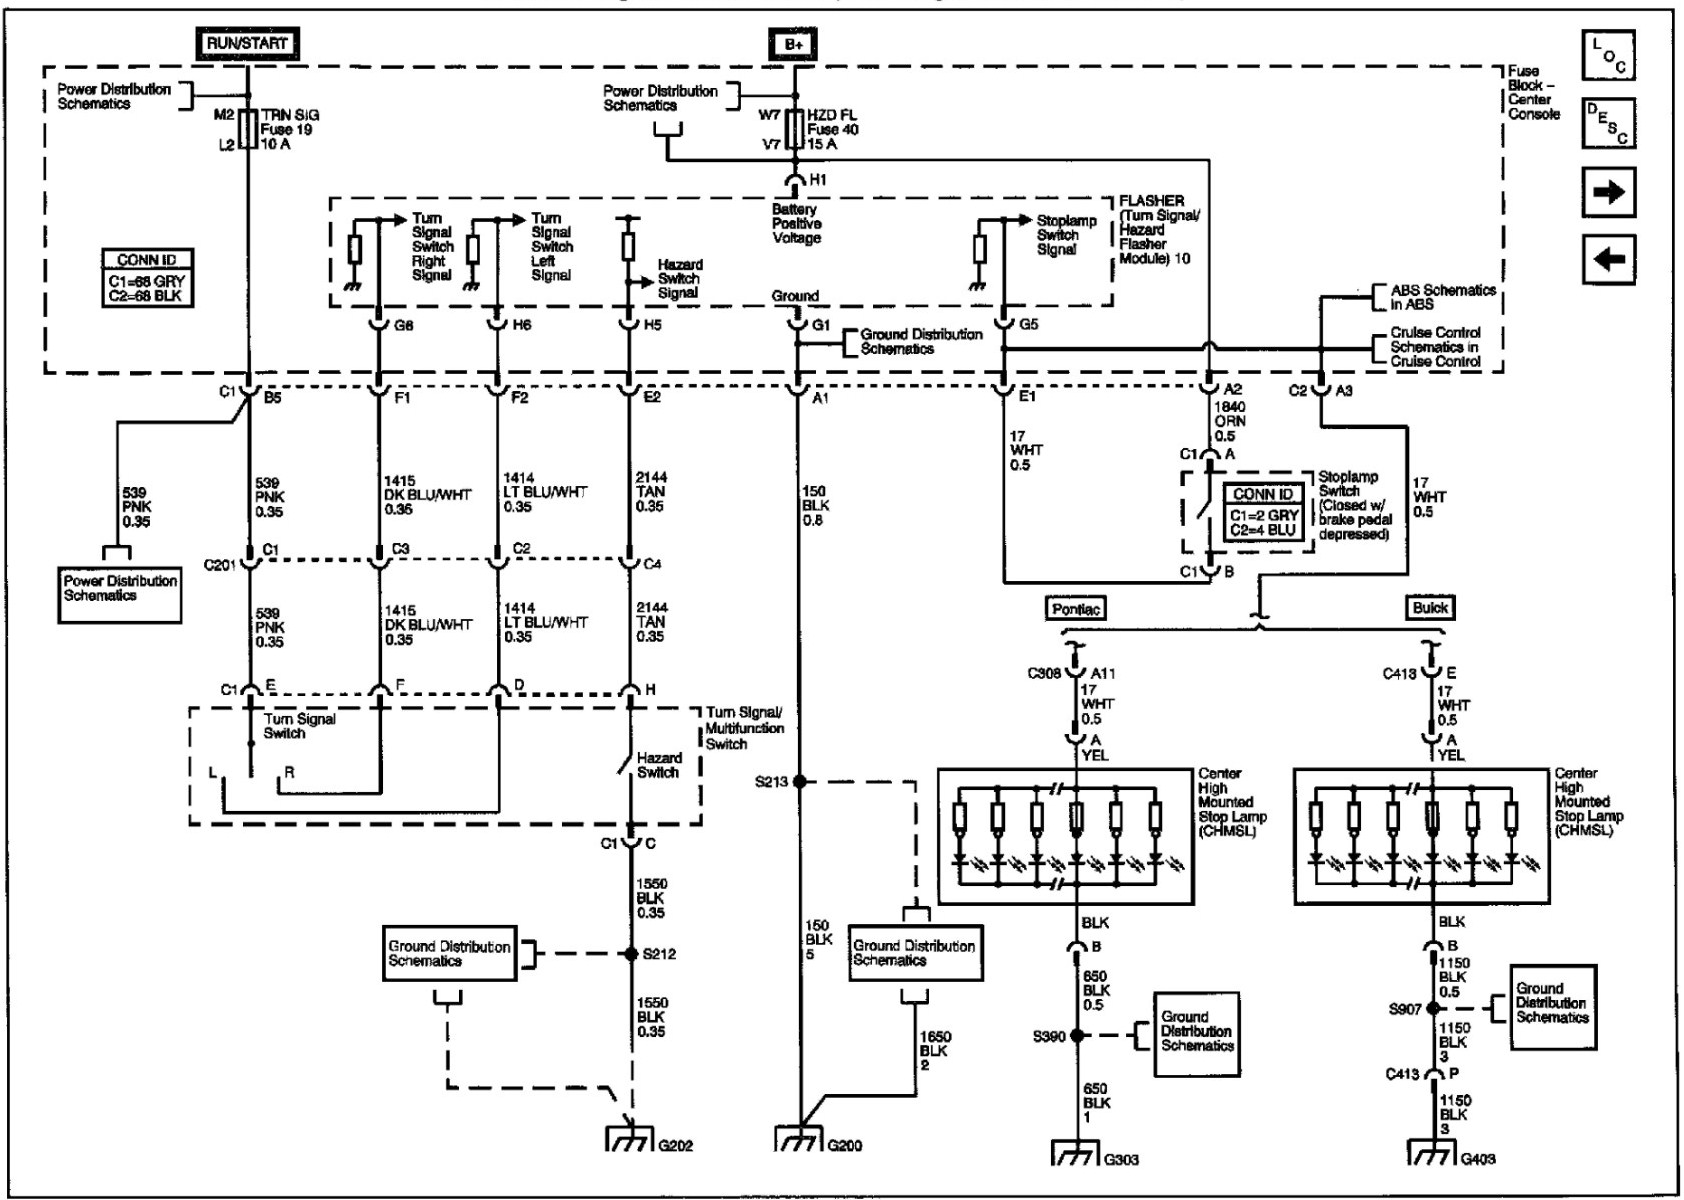 2000 Pontiac Bonneville Wiring Diagram Data Schema 2009 Subaru Forester Power Window 2003 Radio Simple 1998 Montana Schematic